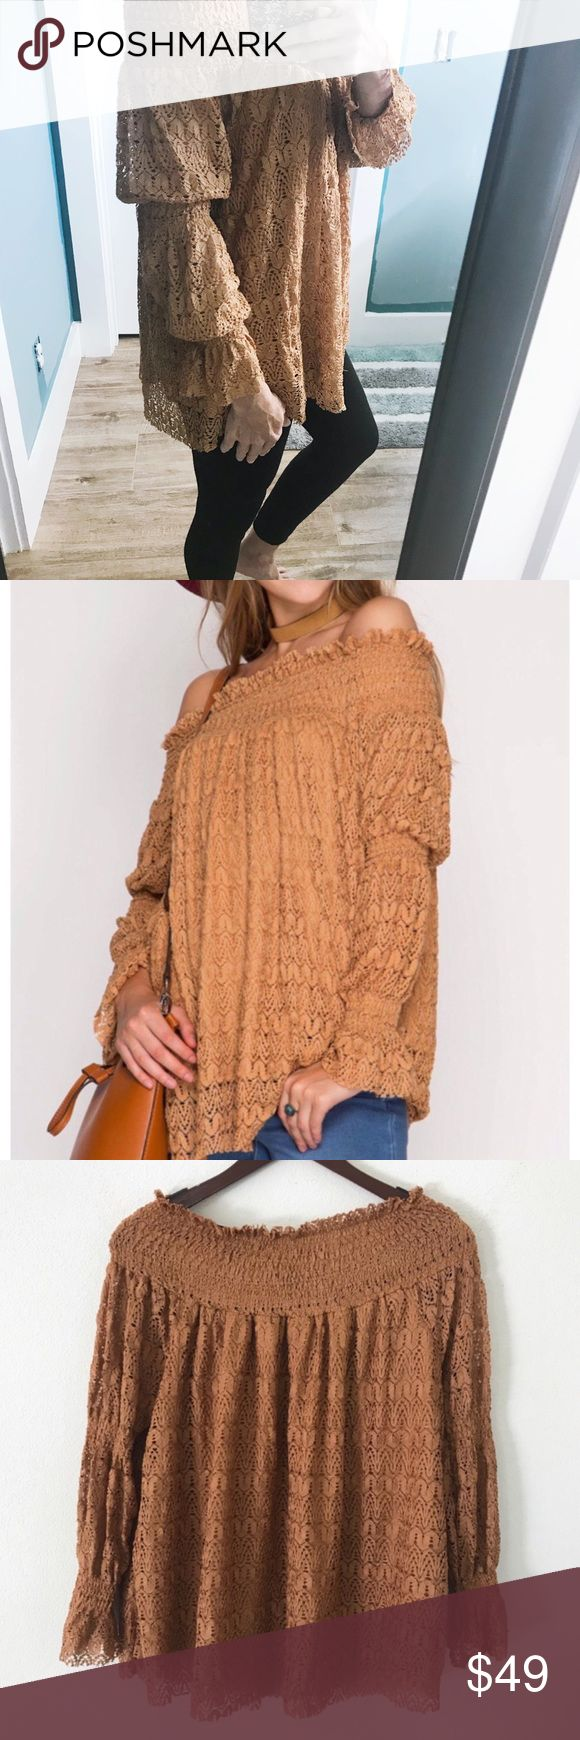 "paytra >> off shoulder lace smocking top << paytra >>  Long sleeve OTS lace top with smocking detail   🌿color: CAMEL 🌿shell: 75% cotton, 25% polyester 🌿lining: 100% cotton 🌿approx measurements:        • bust across:              -small: 18""             -med: 19""             -large: 20""        •length:             -small: 24""             -med: 24""             -large: 24"" 🌿price is firm; add to bundle for 10% discount. Tops Blouses"